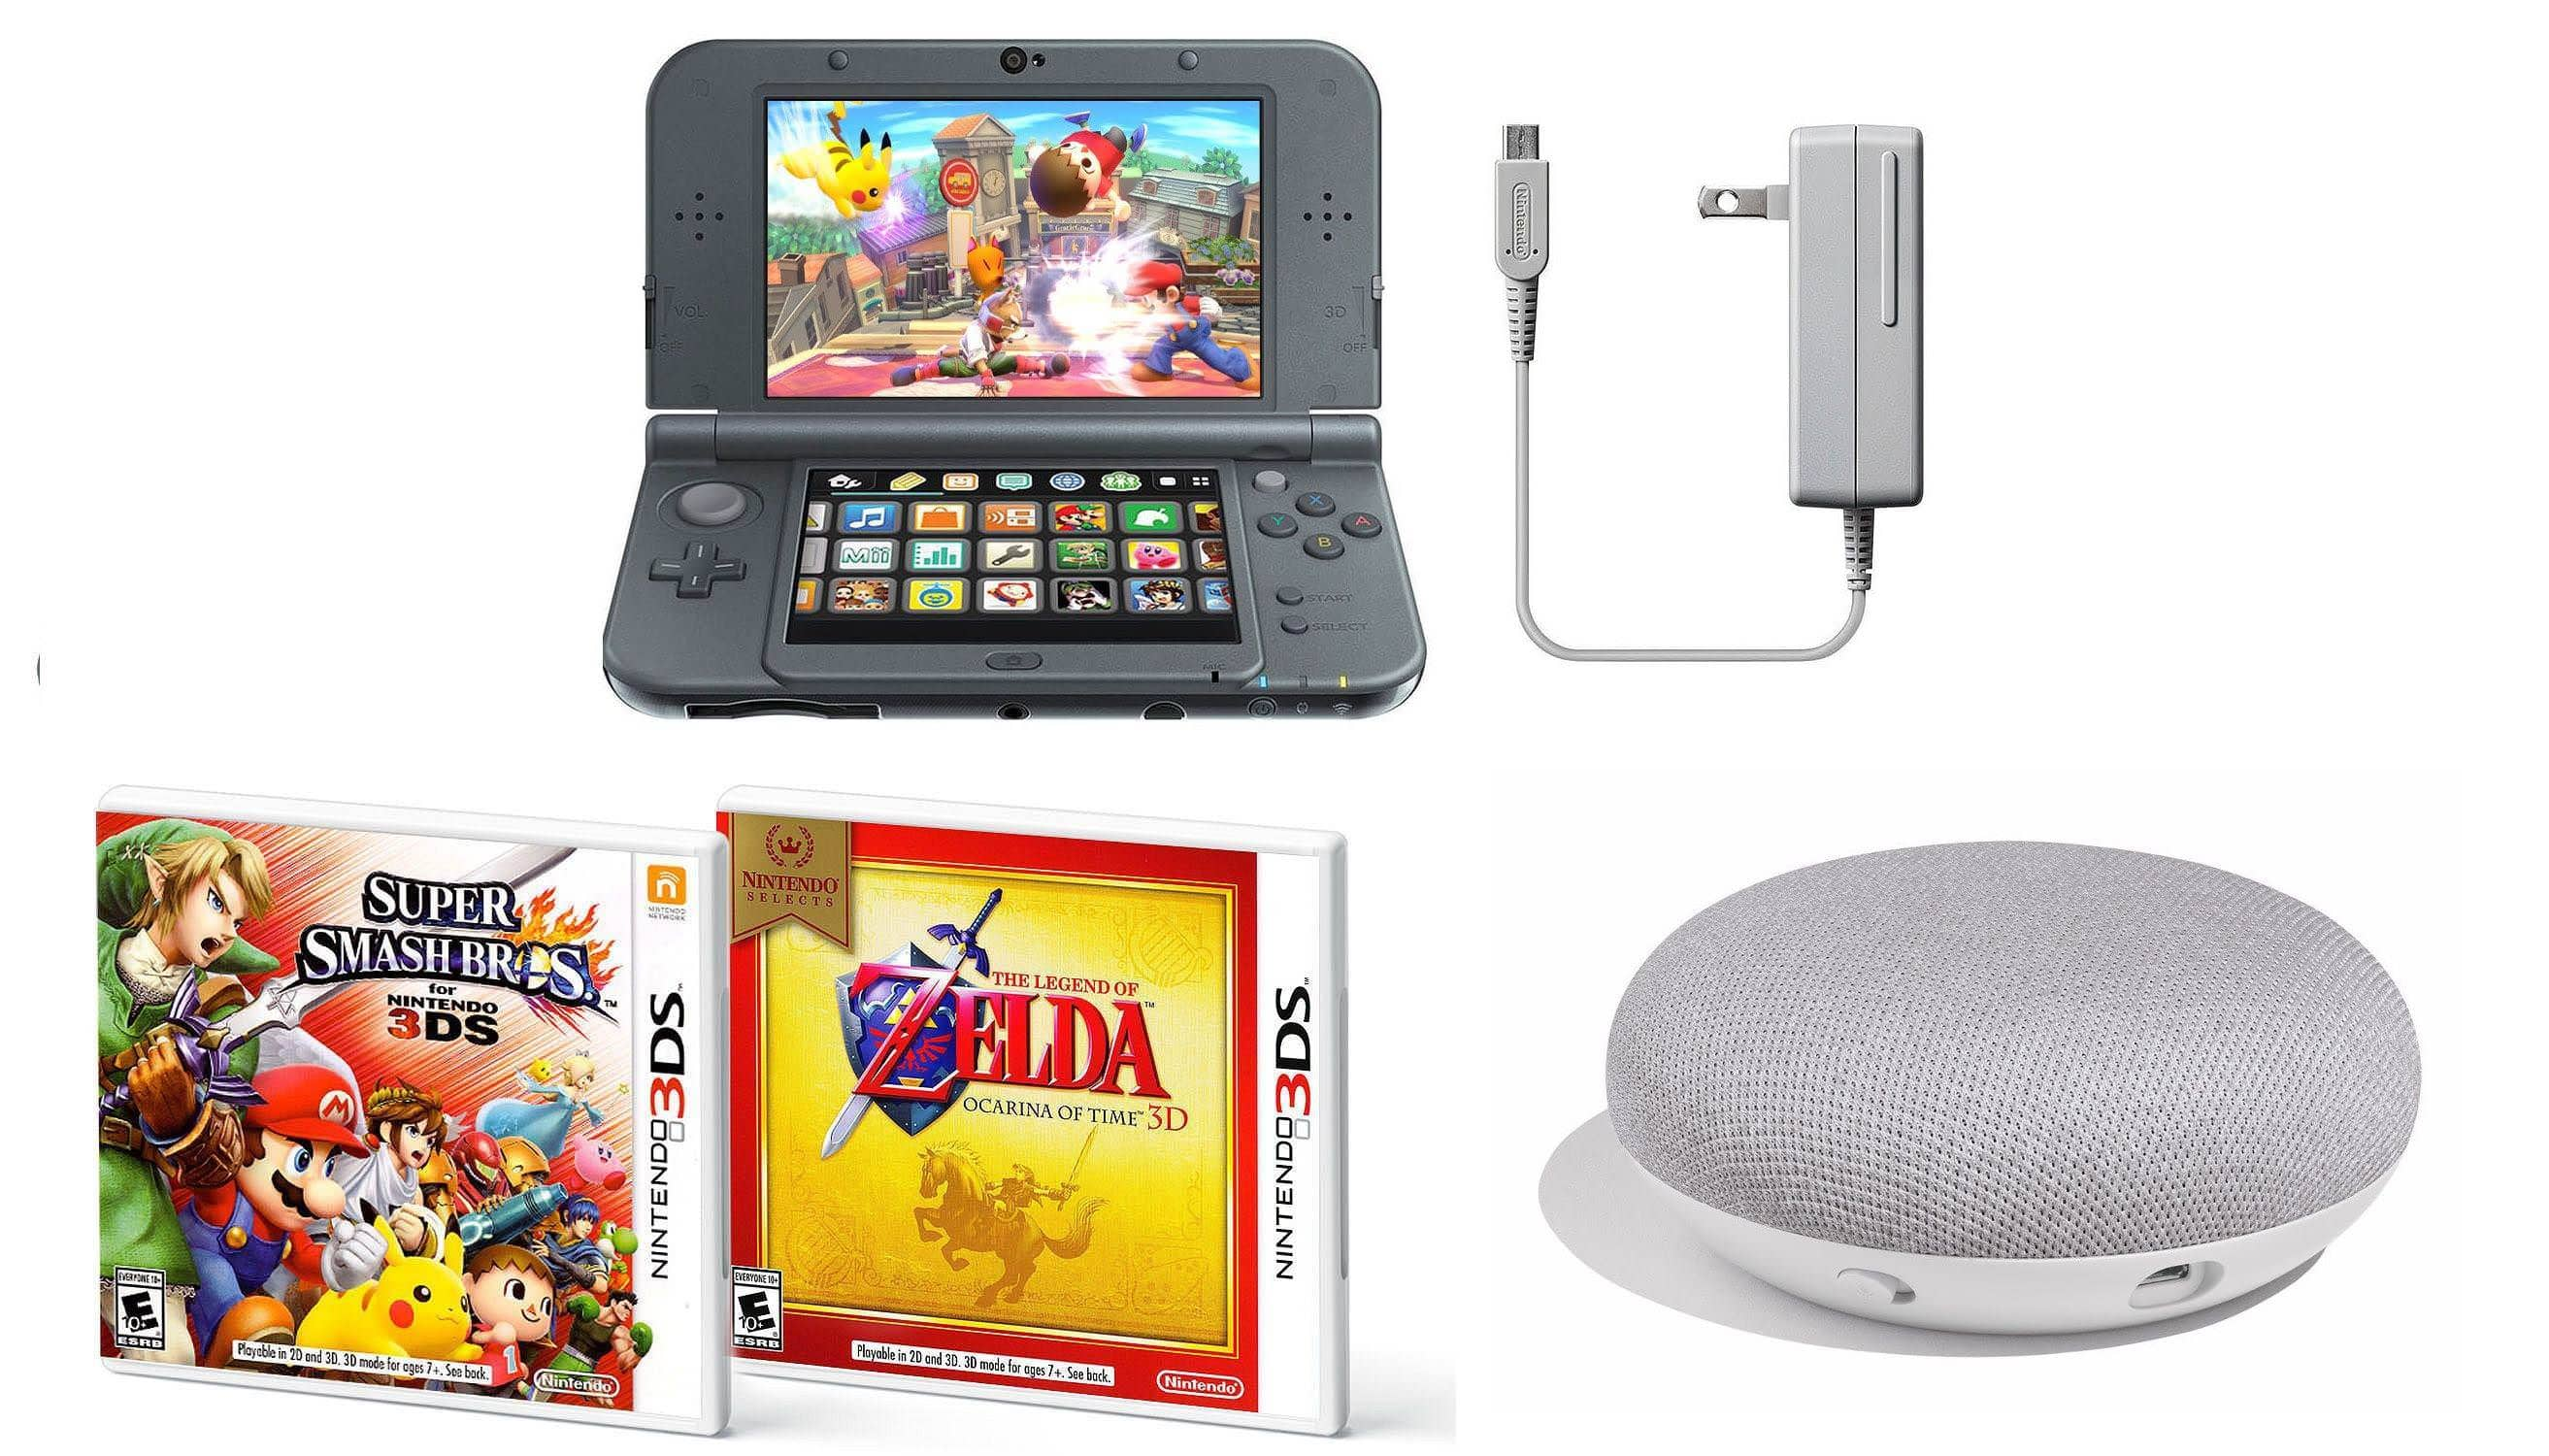 Nintendo New 3DS XL Console (Black) w/ Super Smash Bros. 3DS + Zelda: Ocarina of Time 3D + AC Adapter + Google Home Mini Smart Speaker - $189.99 + Free Shipping @ eBay